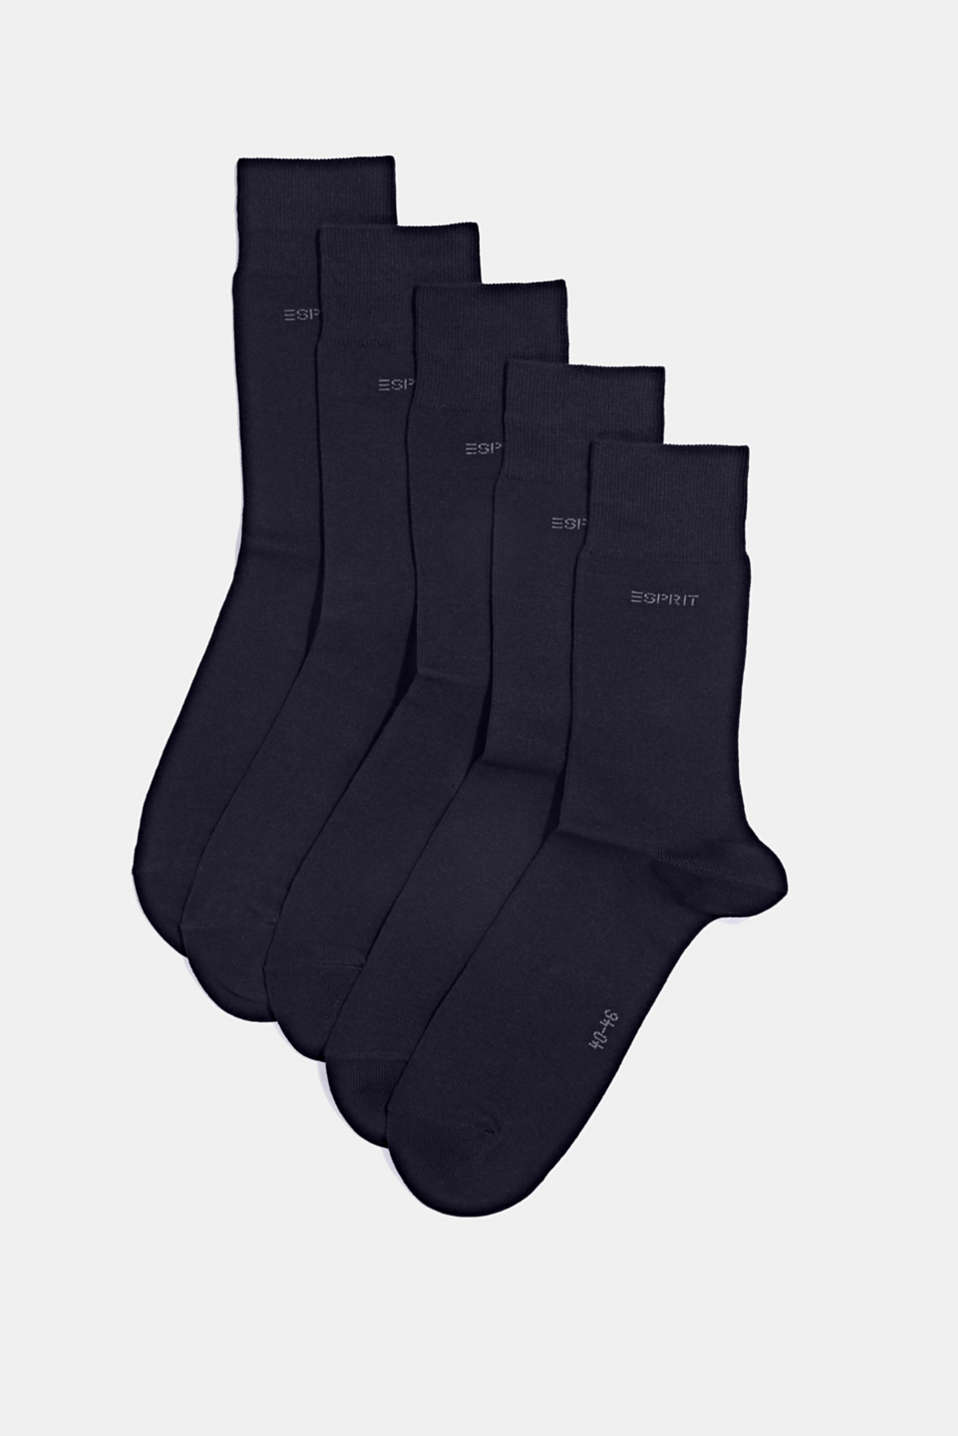 Esprit - Five pack of blended cotton socks